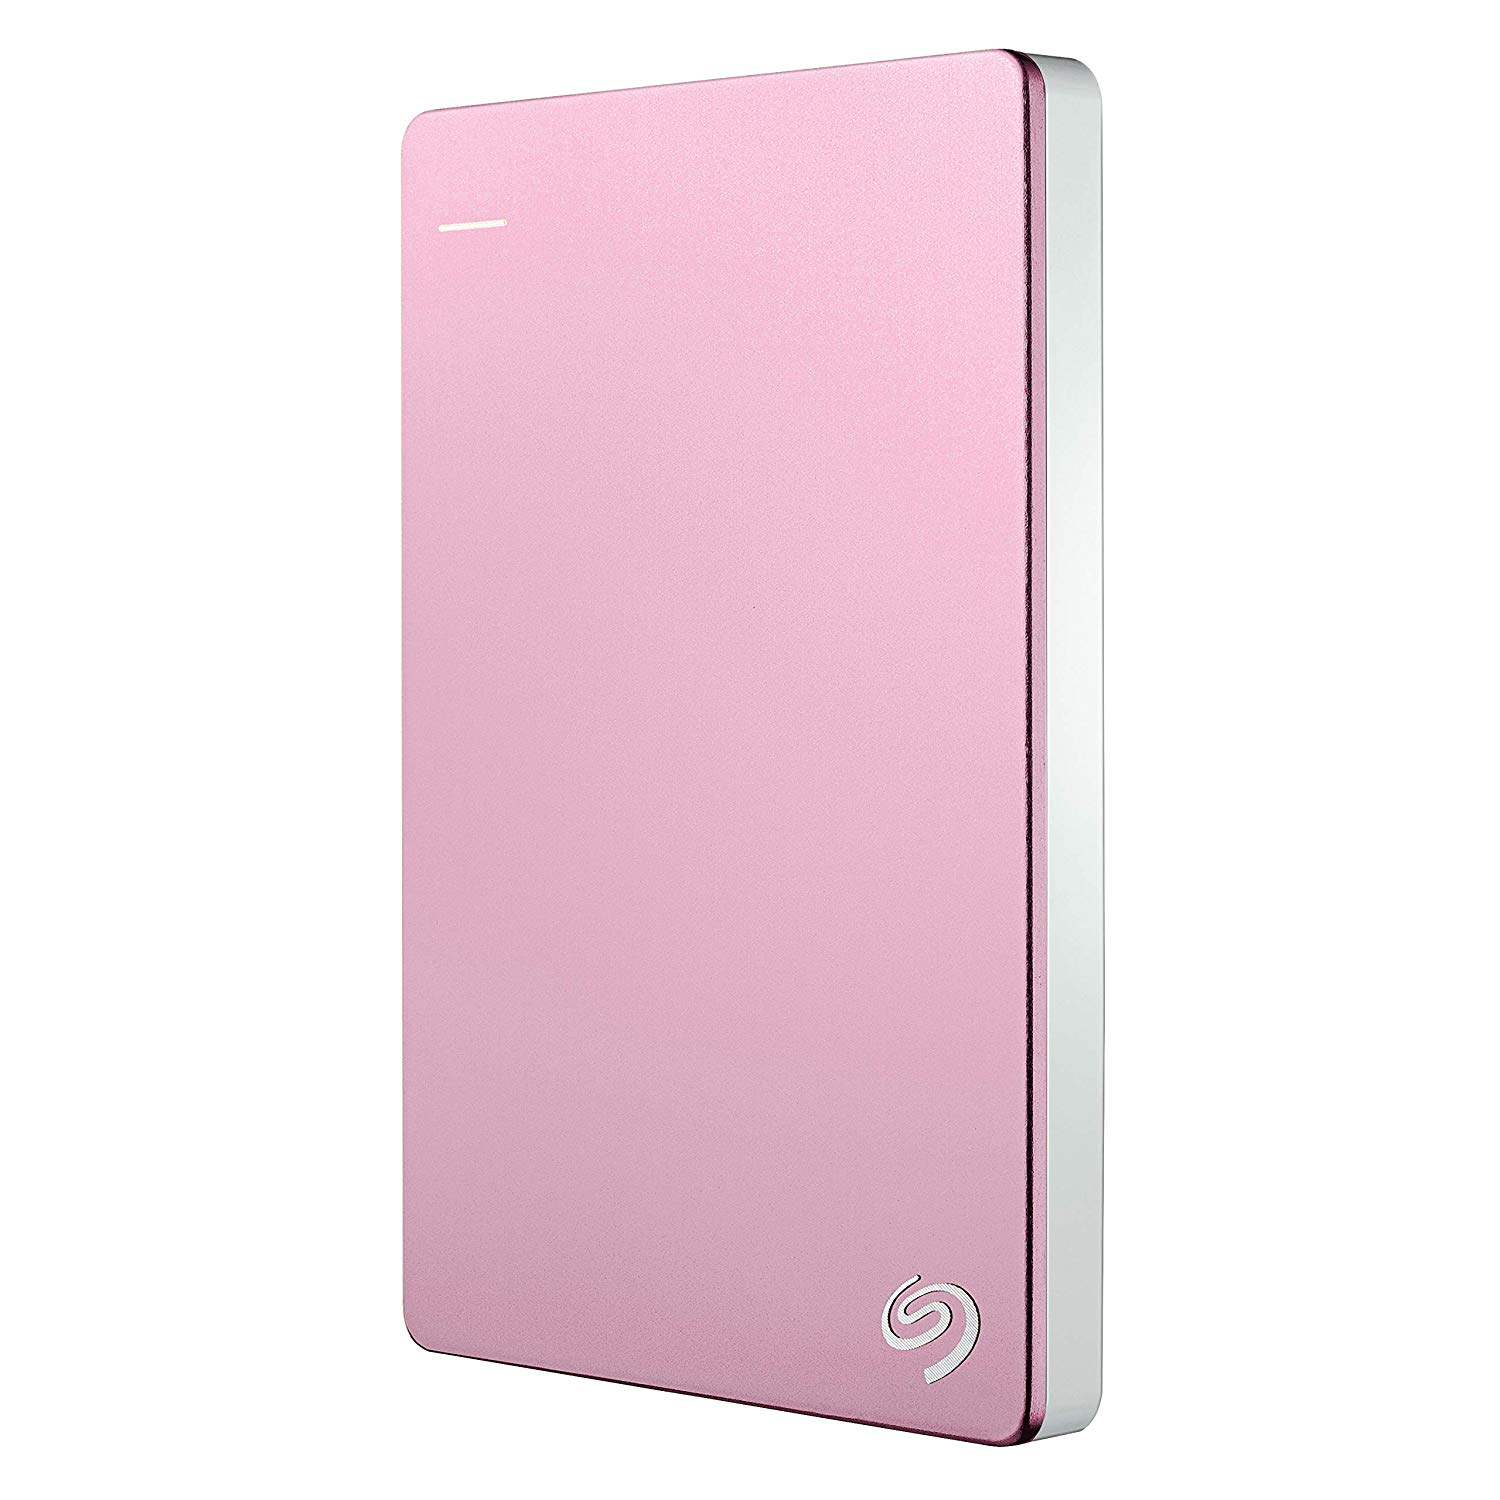 Seagate 2TB Backup Plus Slim (Rose Gold) USB 3.0 External Hard Drive for PC/Mac with 2 Months Free Adobe Photography Plan